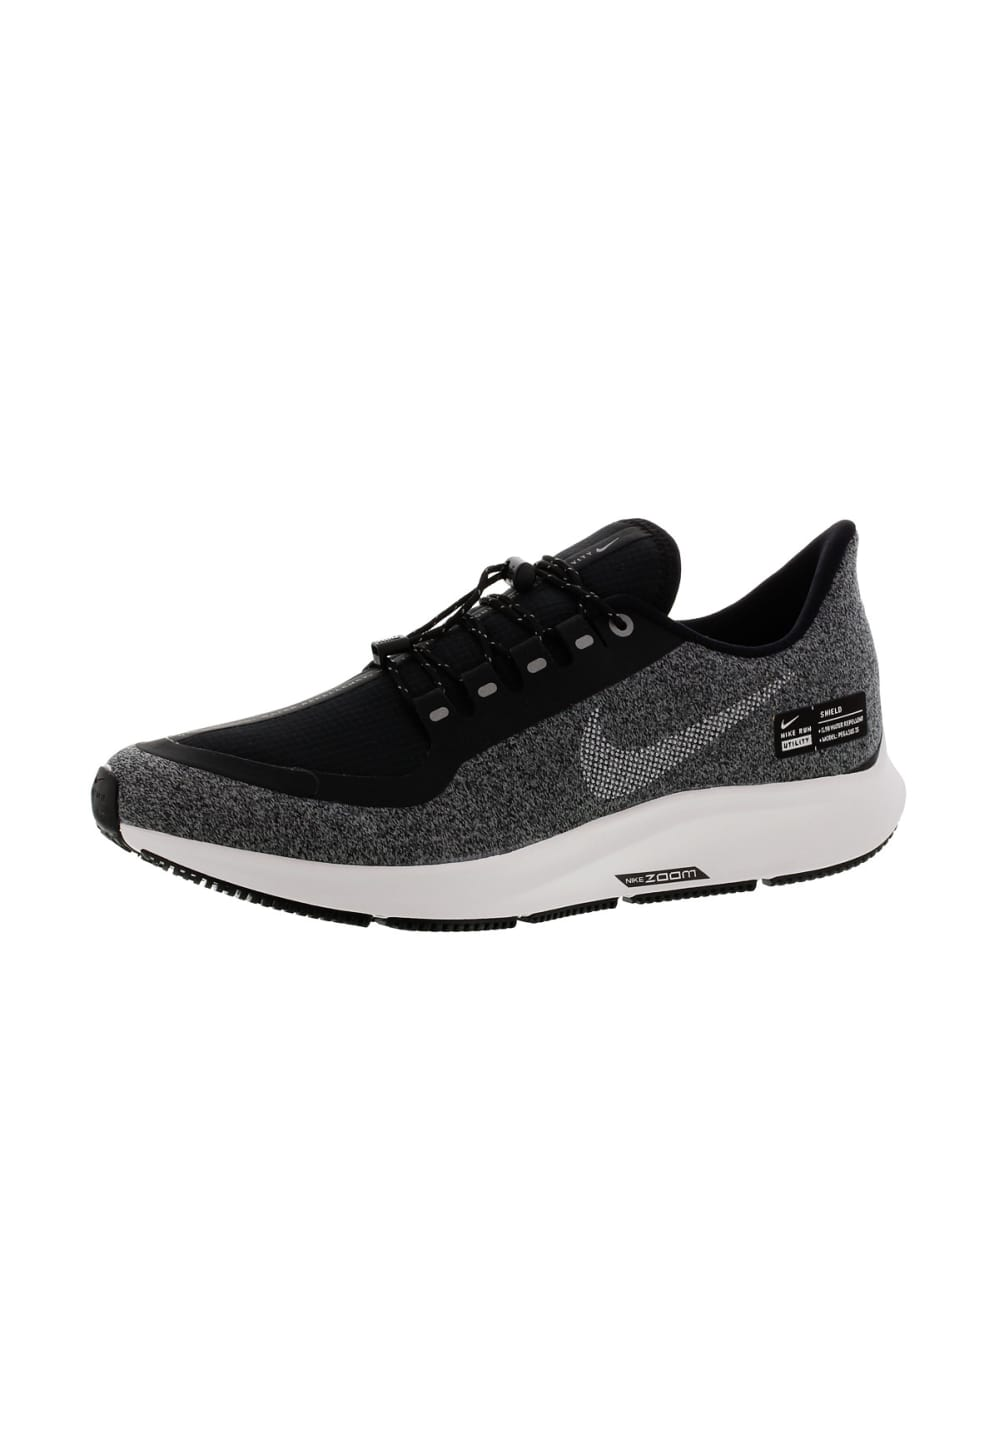 official photos d4e49 fbba1 Next. -32%. Nike. Air Zoom Pegasus 35 Rn Shield - Chaussures running pour  Femme